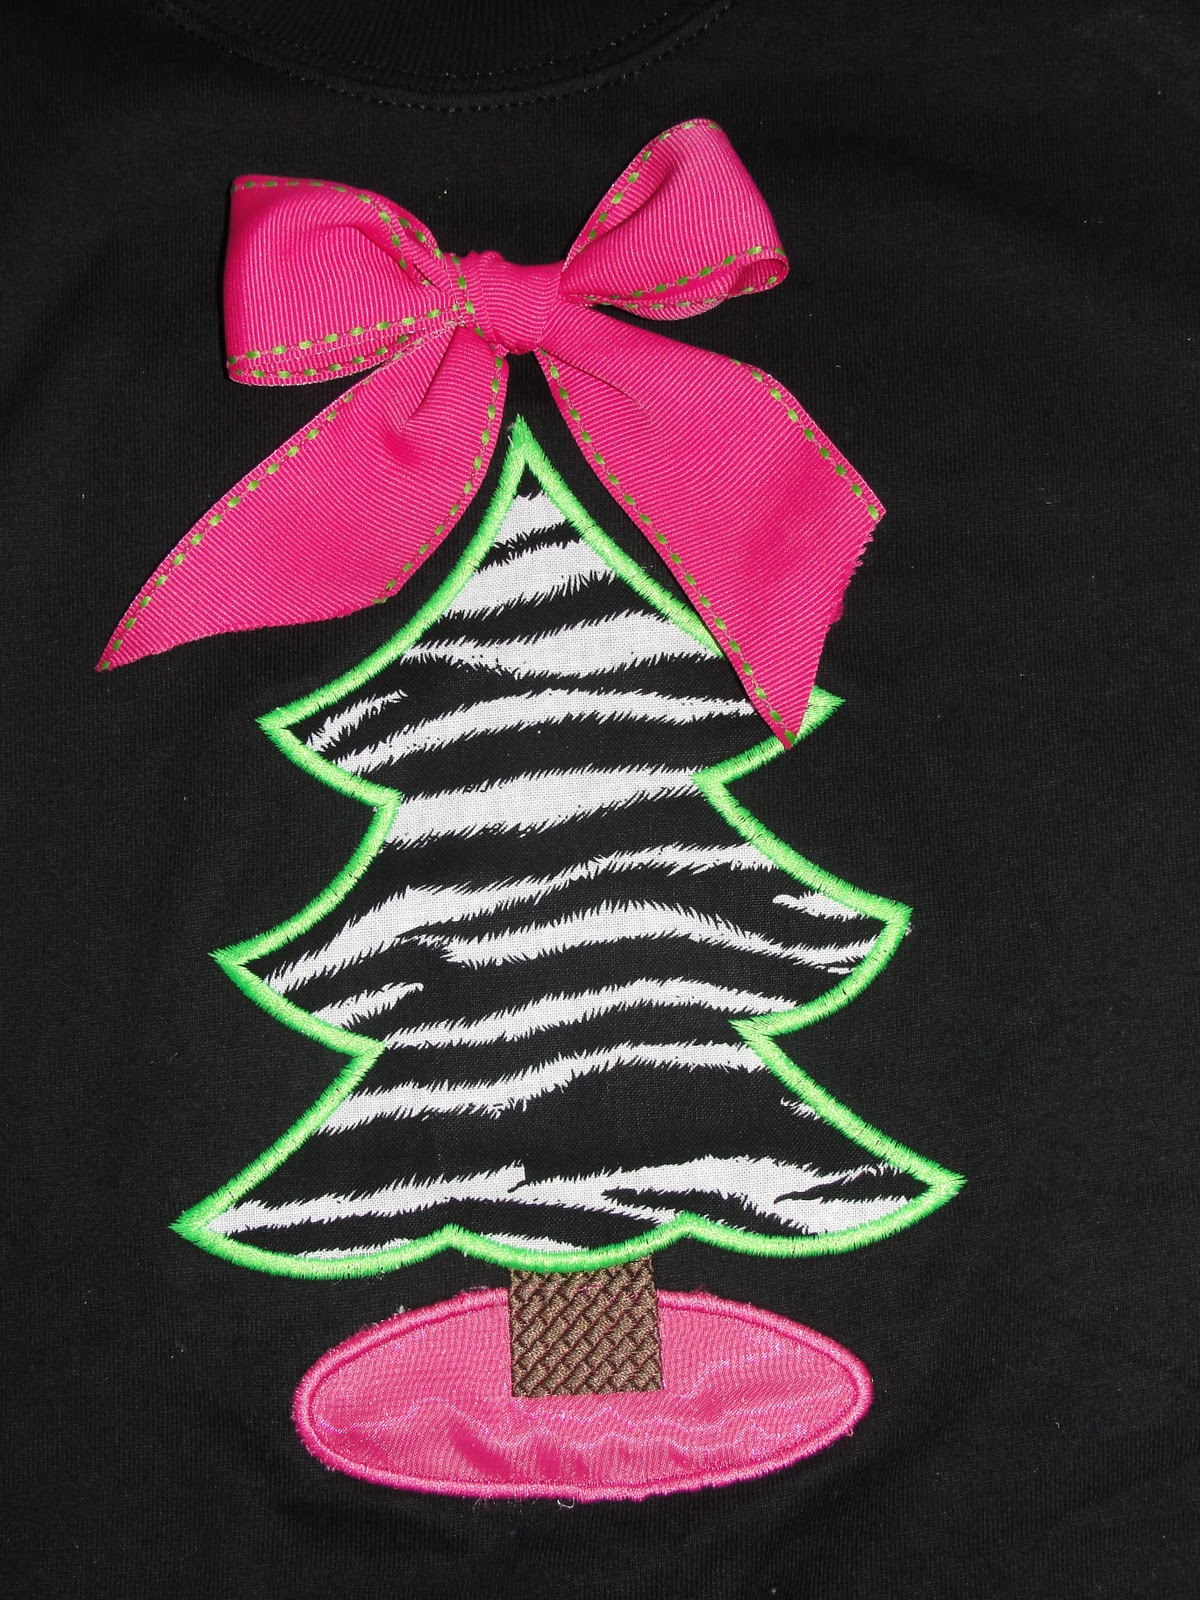 Itsy Bitsy Stitches Zebra And Glitz Christmas Tree Appliques. Diy Christmas Gifts Decorations. Felt Christmas Ornament Kits Ebay. Which Disney Resort Has The Best Christmas Decorations. Pictures Of Christmas Ornaments To Make. Making Christmas Decorations To Sell. Christmas Mantelpiece Decorations Uk. Needle Felted Christmas Decorations For Sale. How To Make Quick Christmas Ornaments